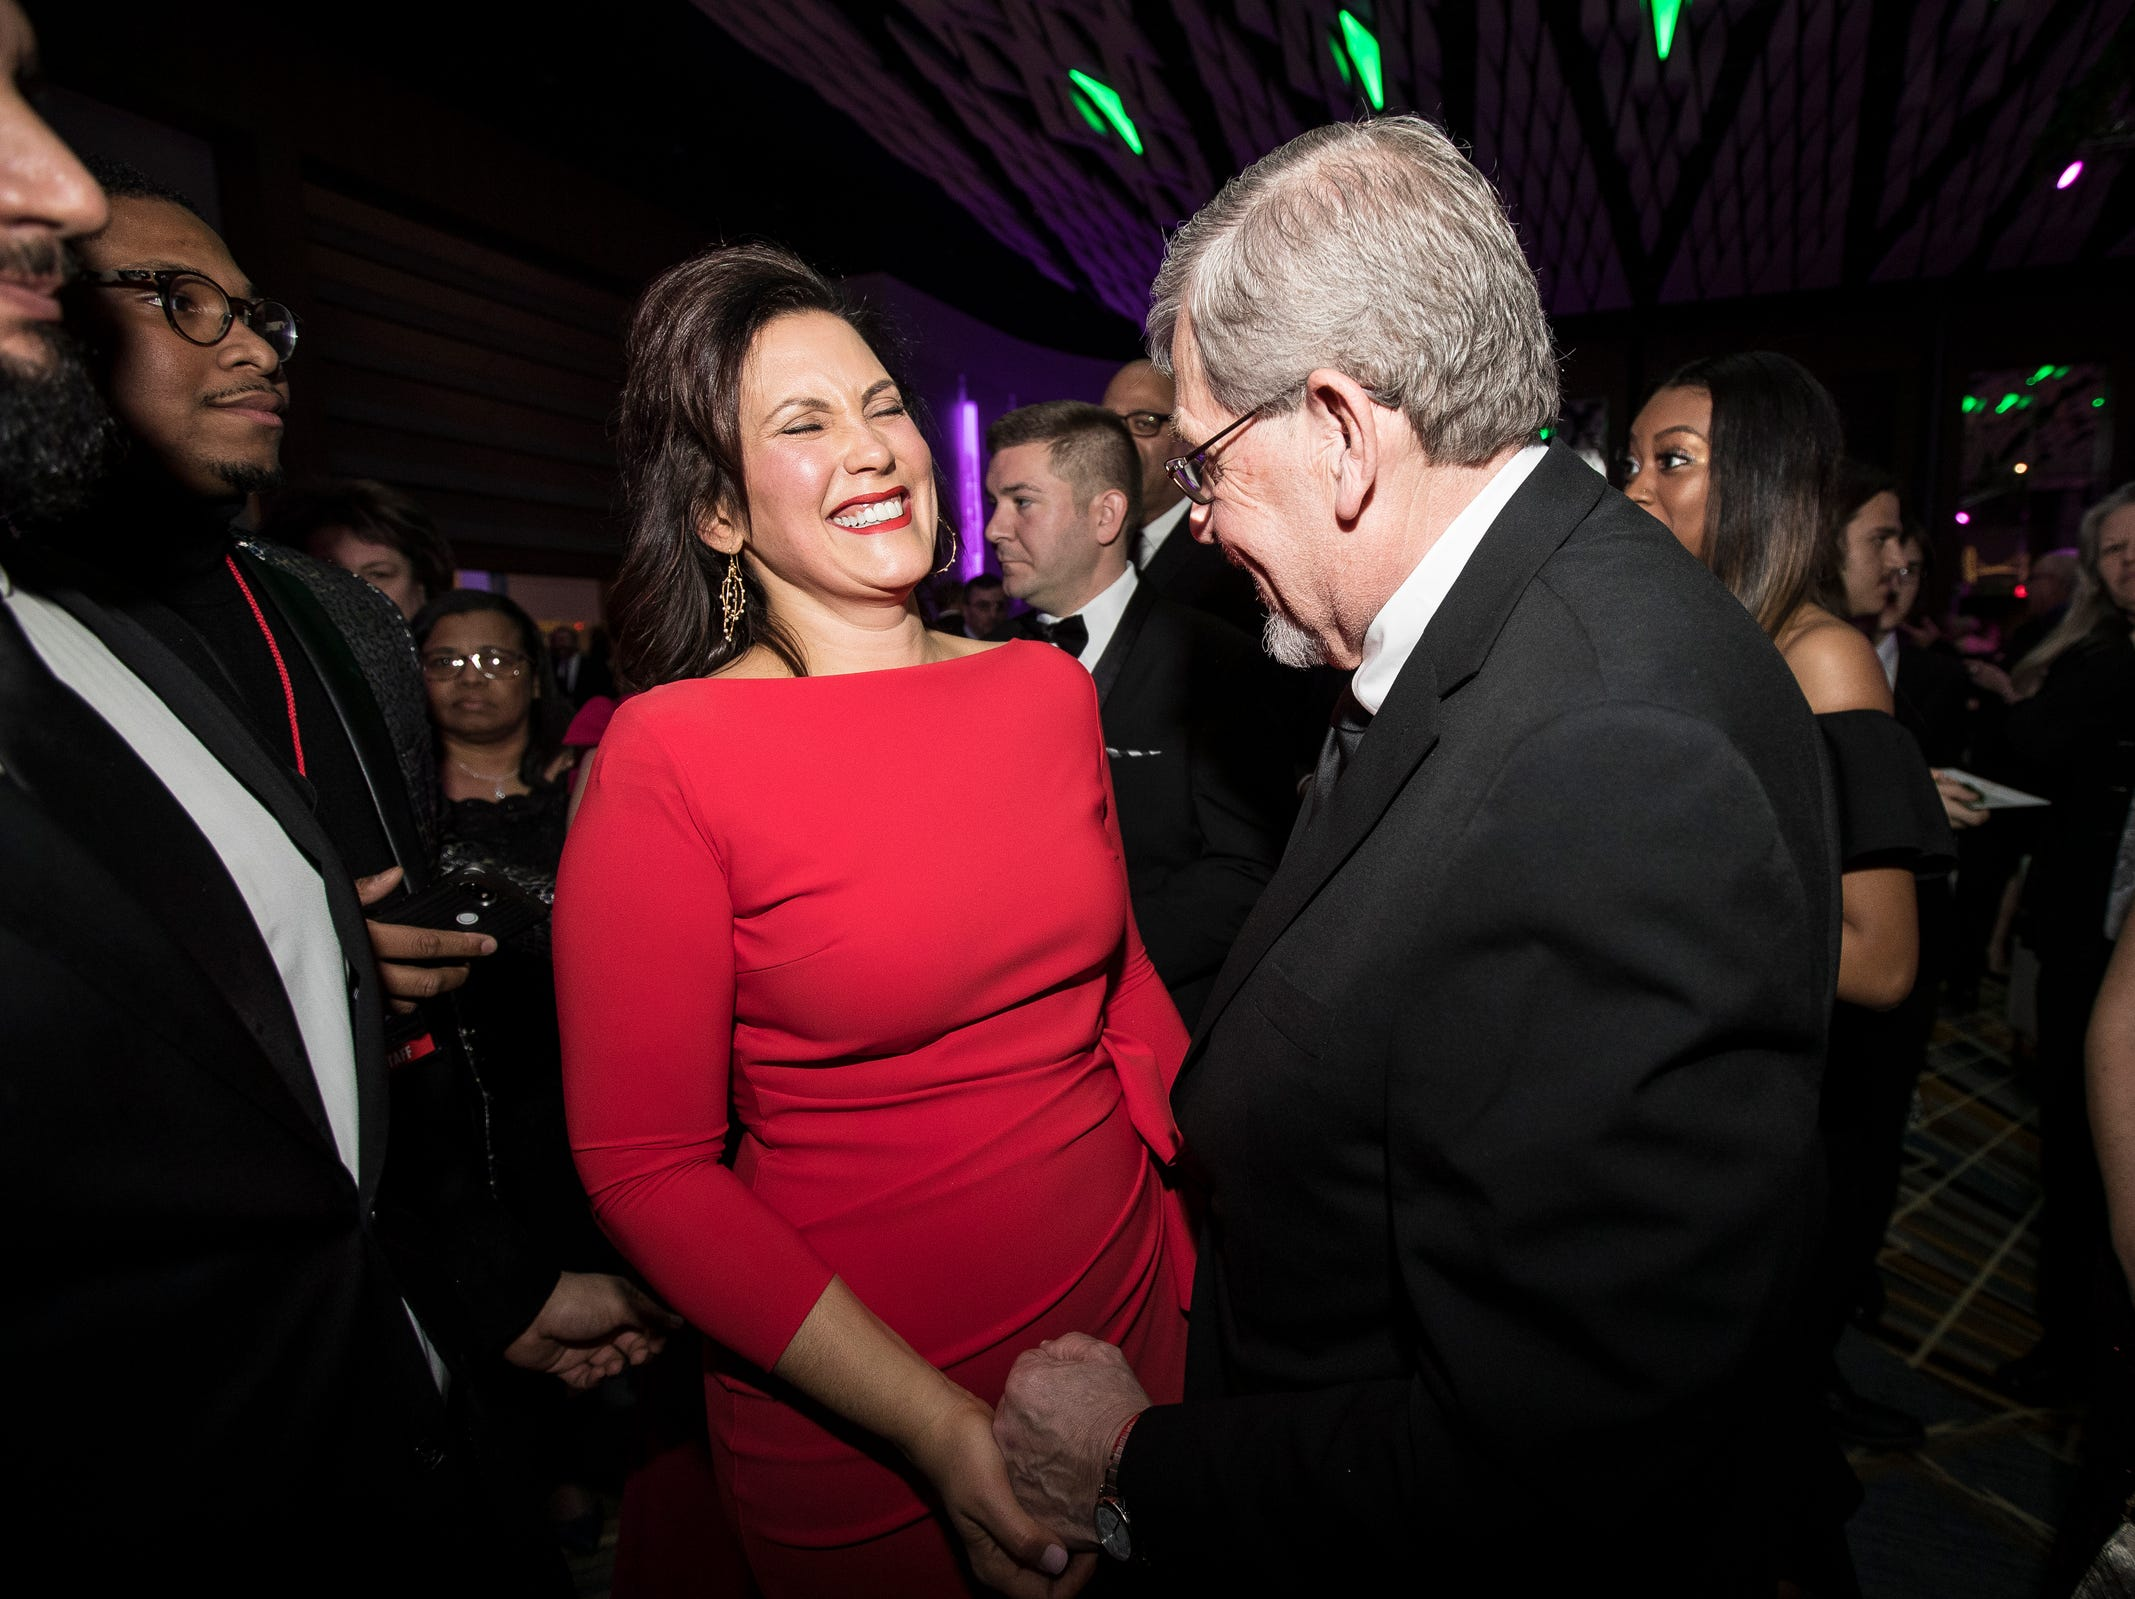 Governor Gretchen Whitmer and former state representative Stephen Adamini share a laughter during the inaugural ball at Cobo Center in Detroit on Tuesday, Jan. 1, 2019.